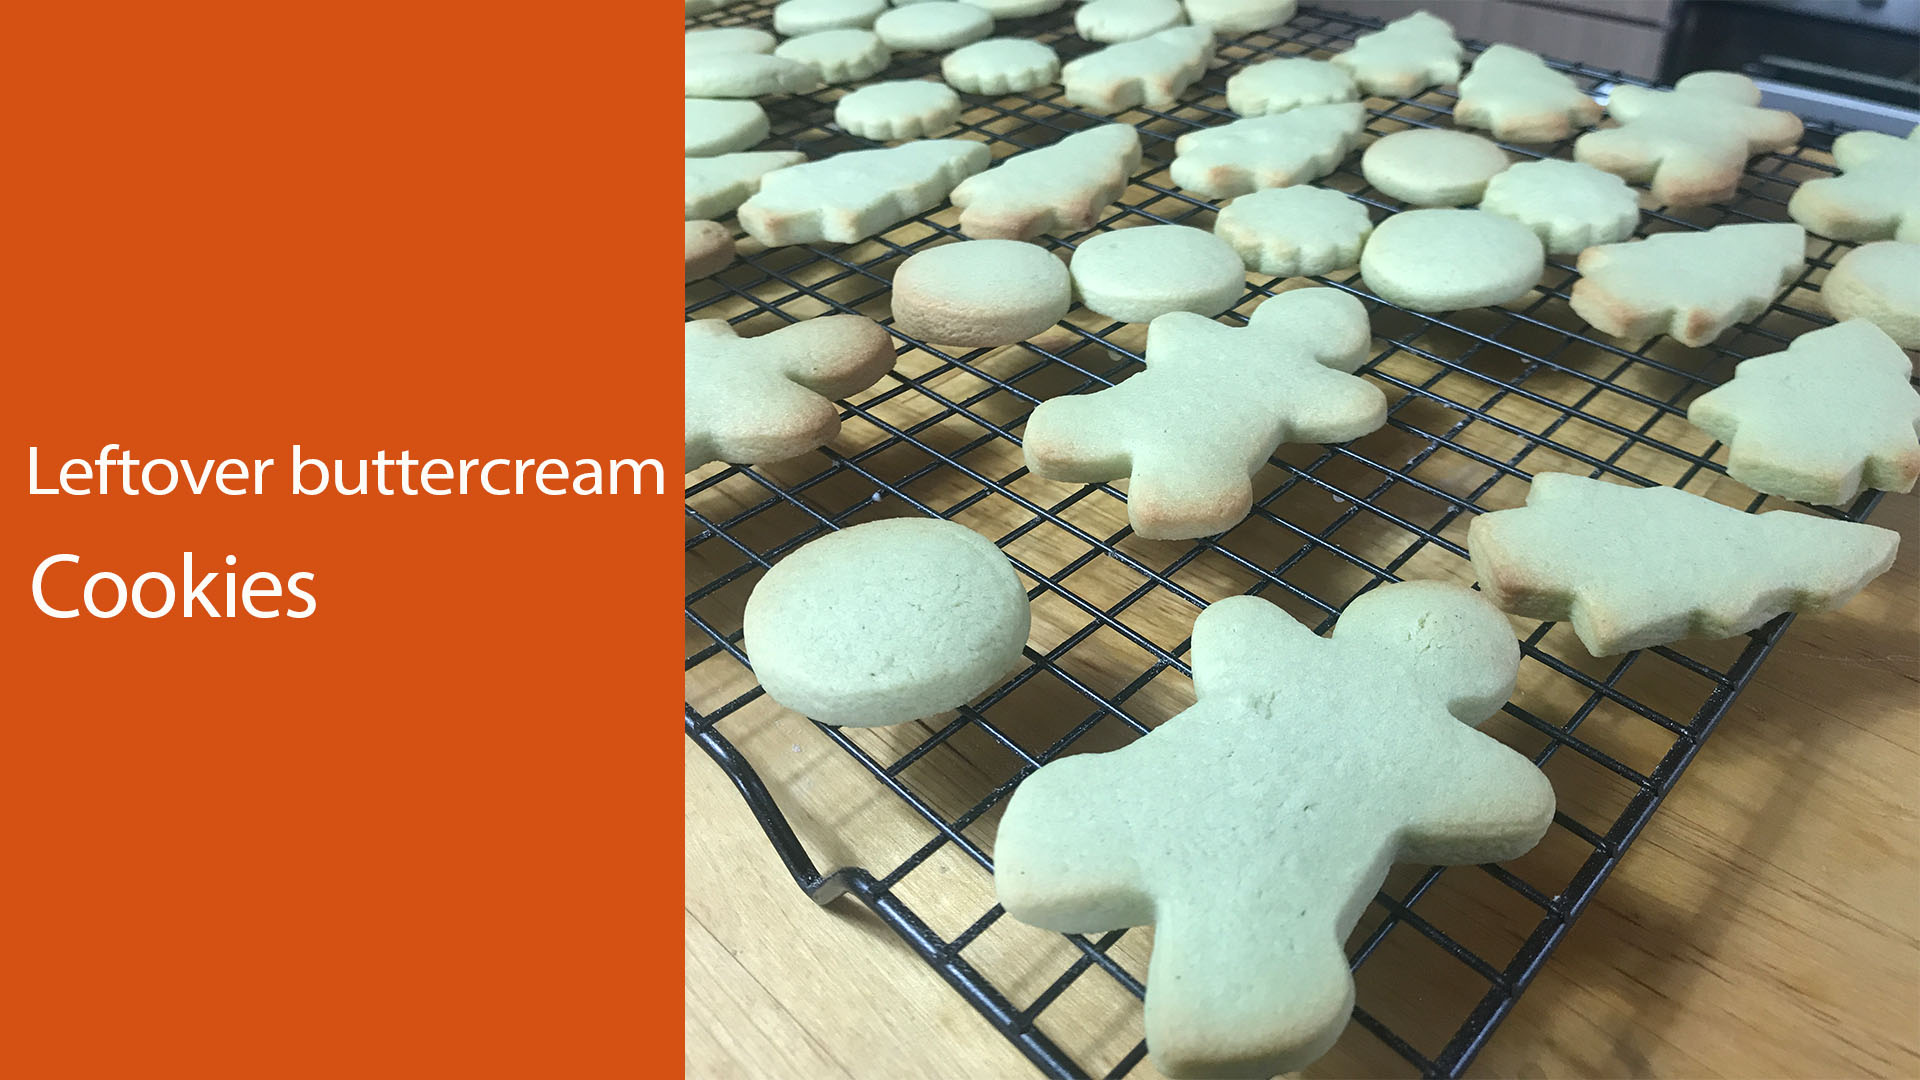 Leftover buttercream recipe : Cookies with leftover frosting